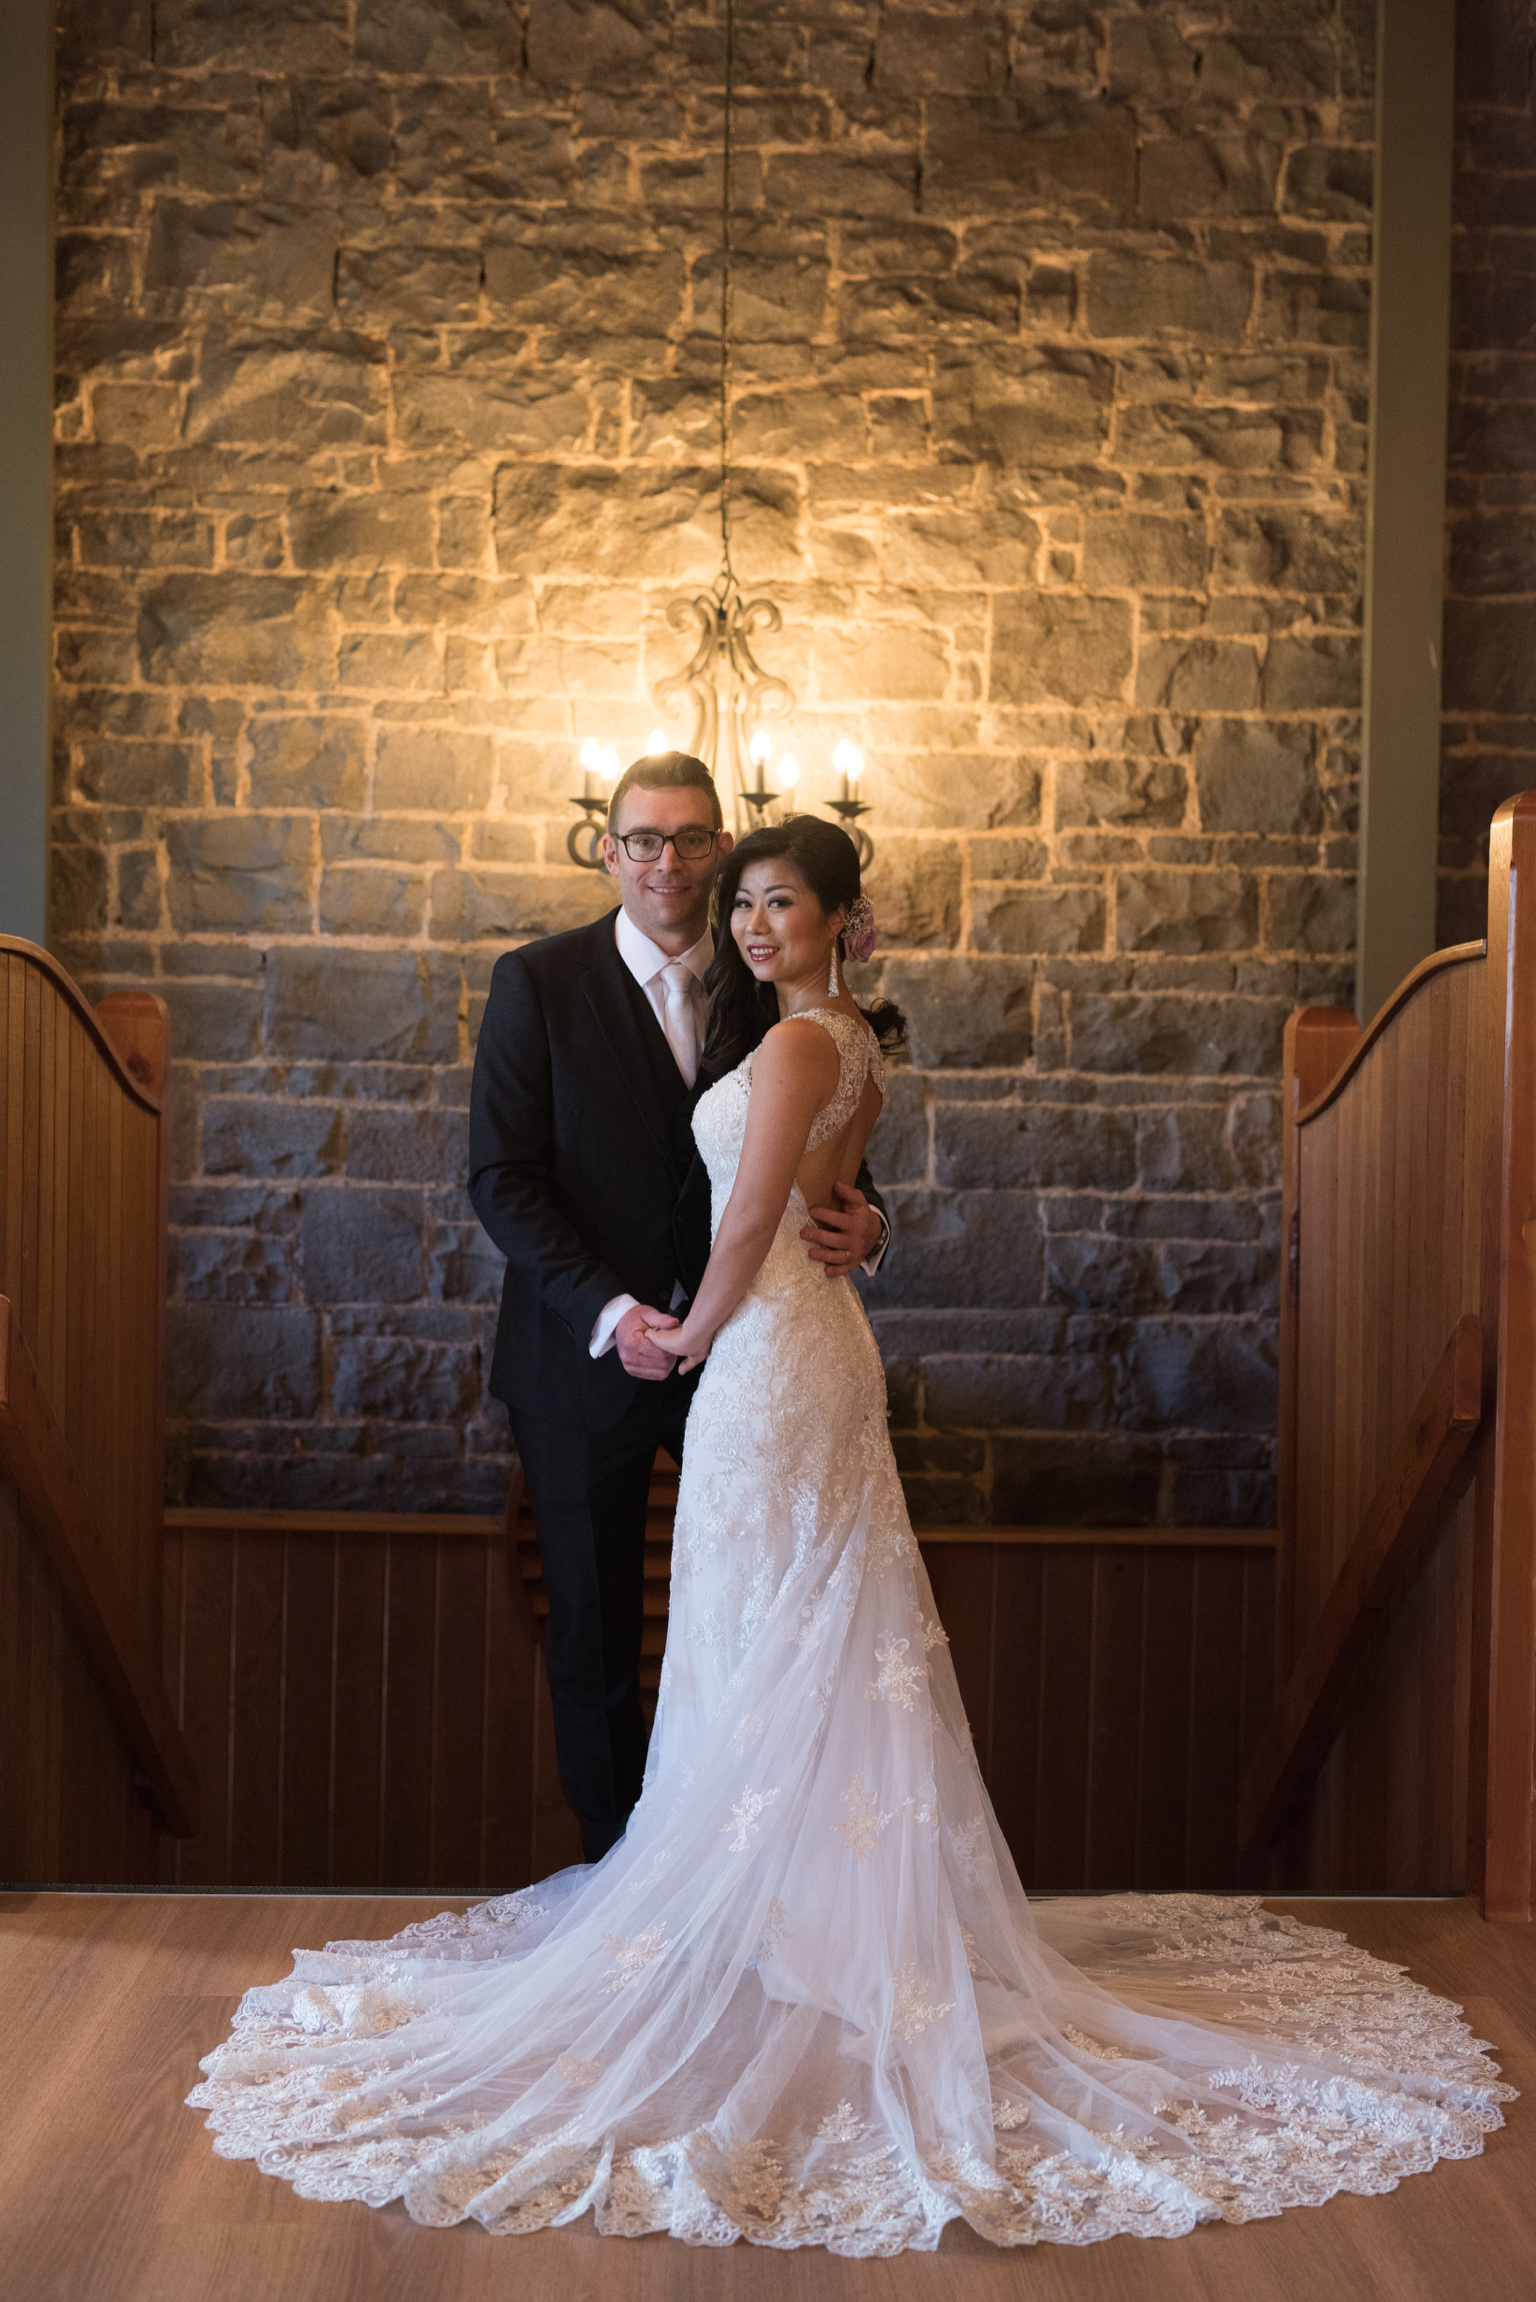 Tina and Ben front of stairs.jpg